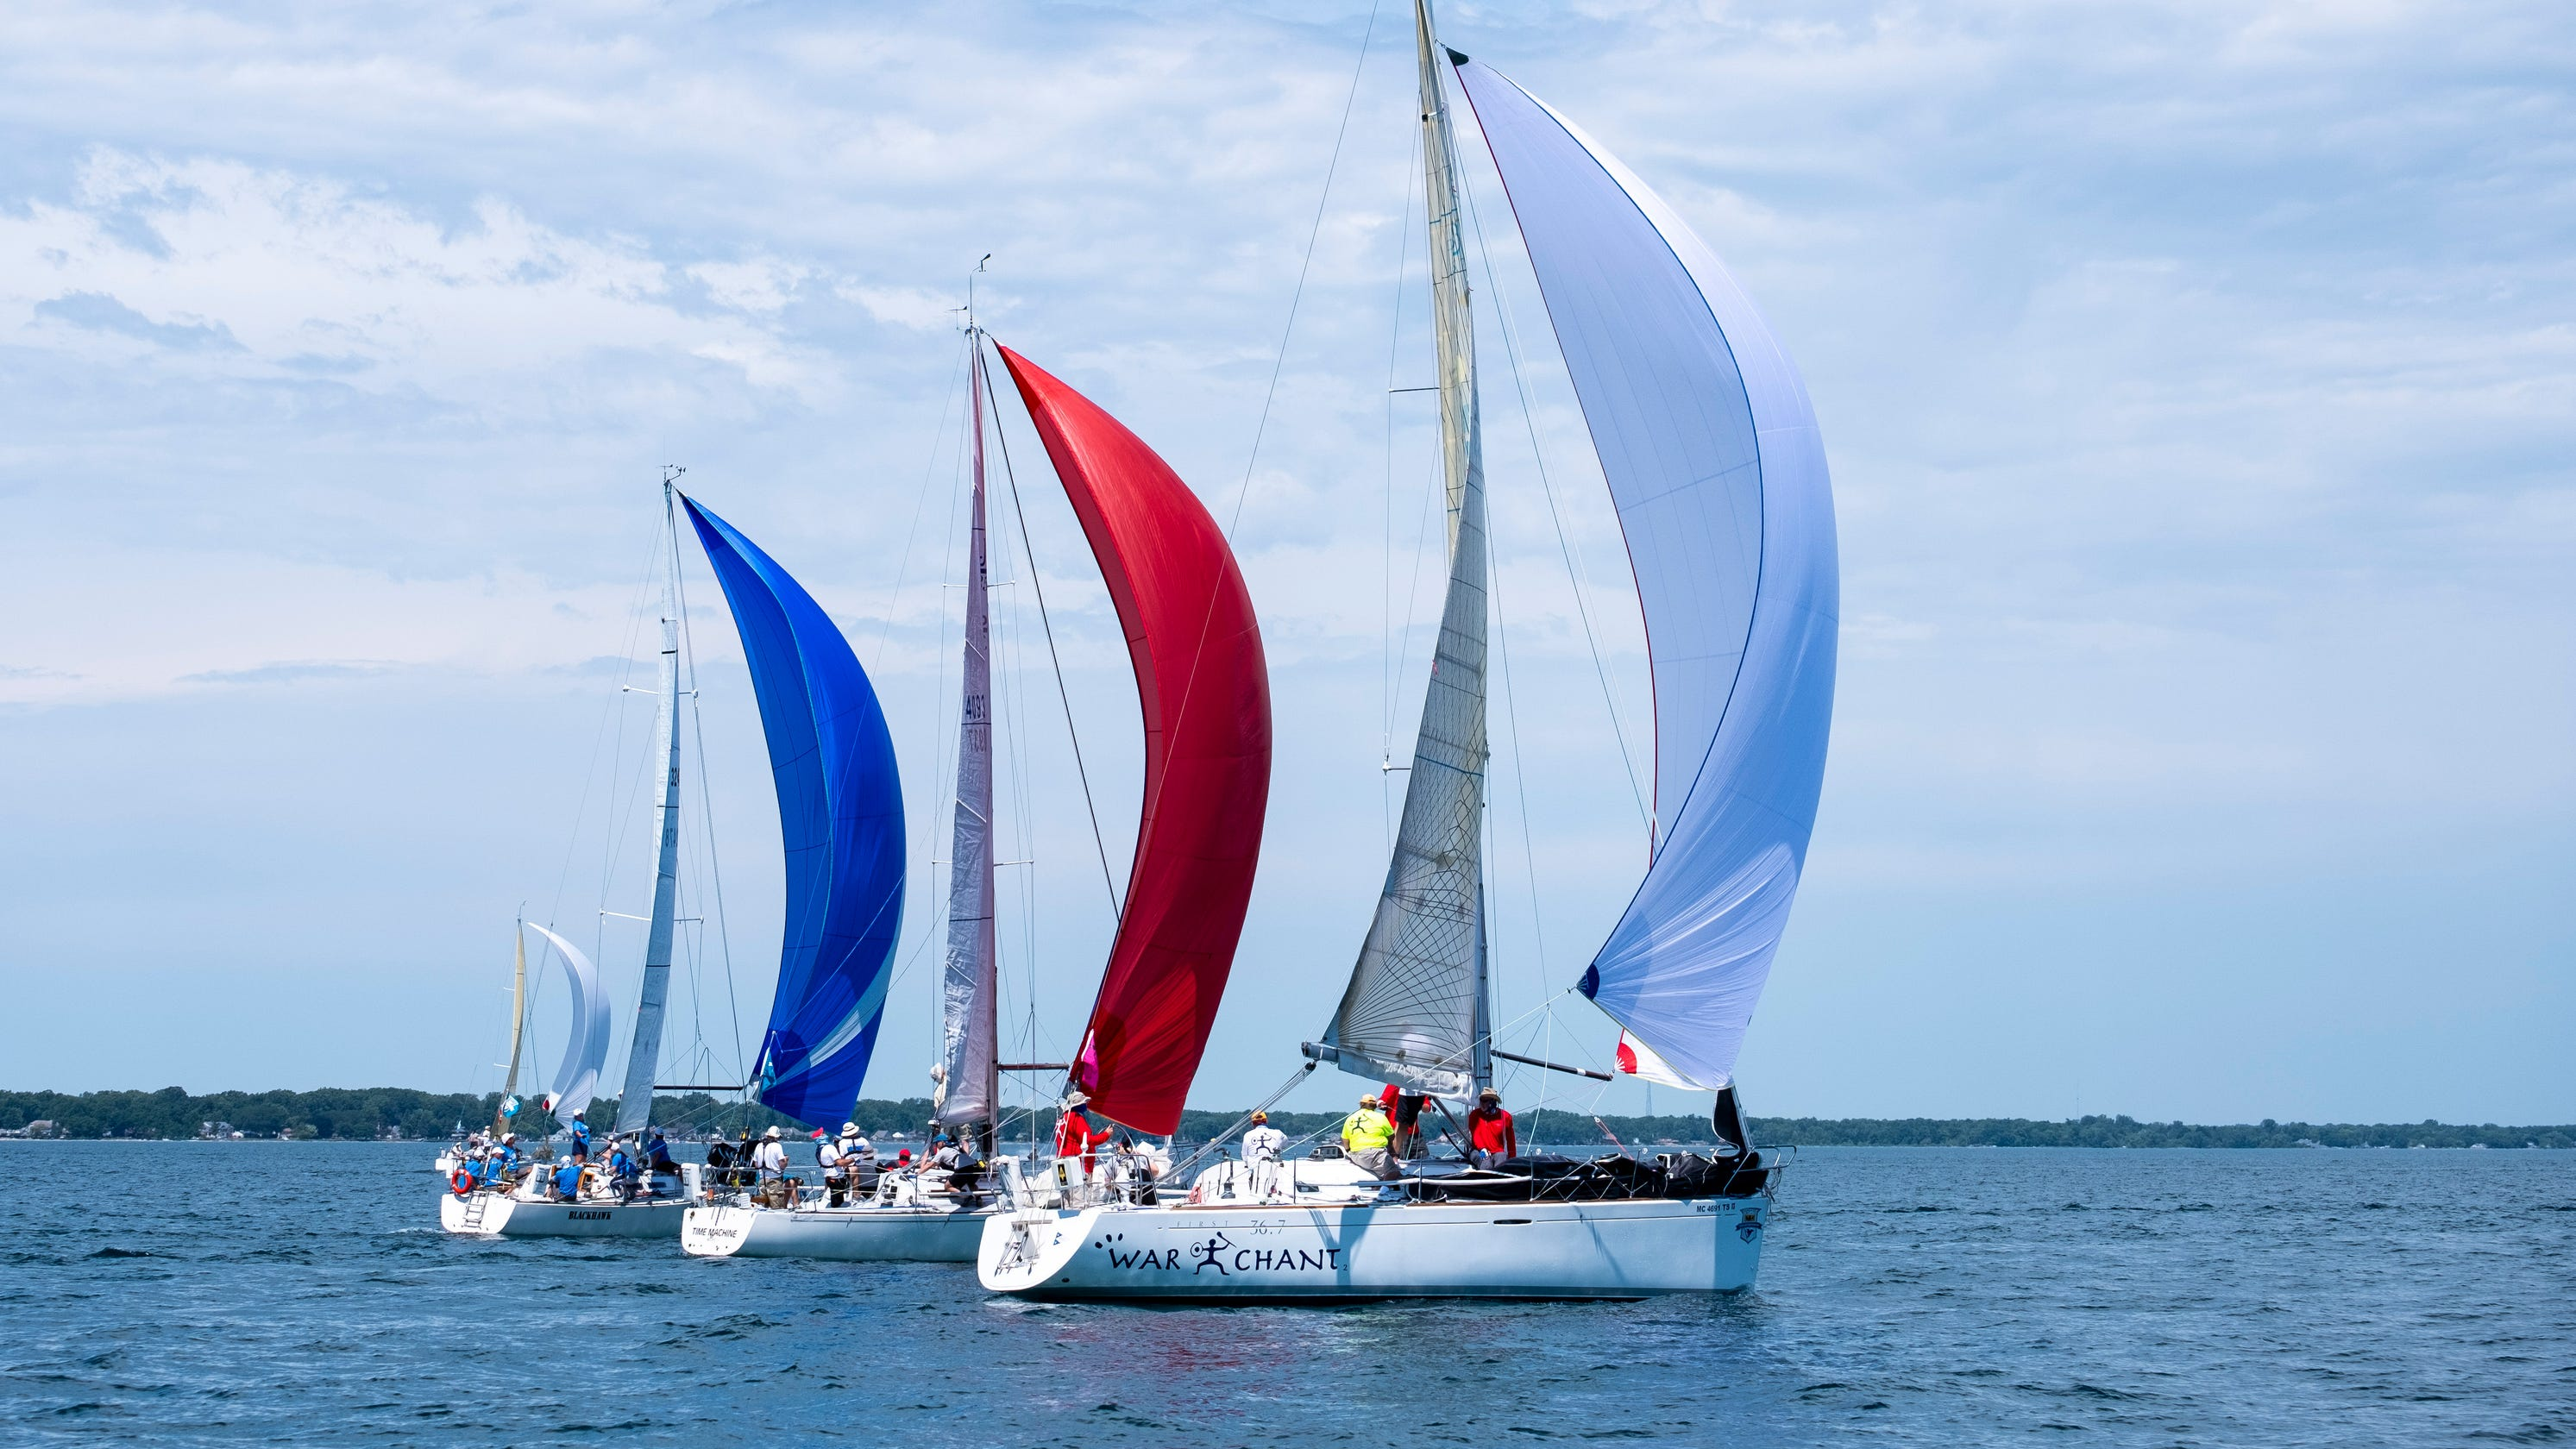 Chicago to Mackinac race canceled for first time since just after World War I